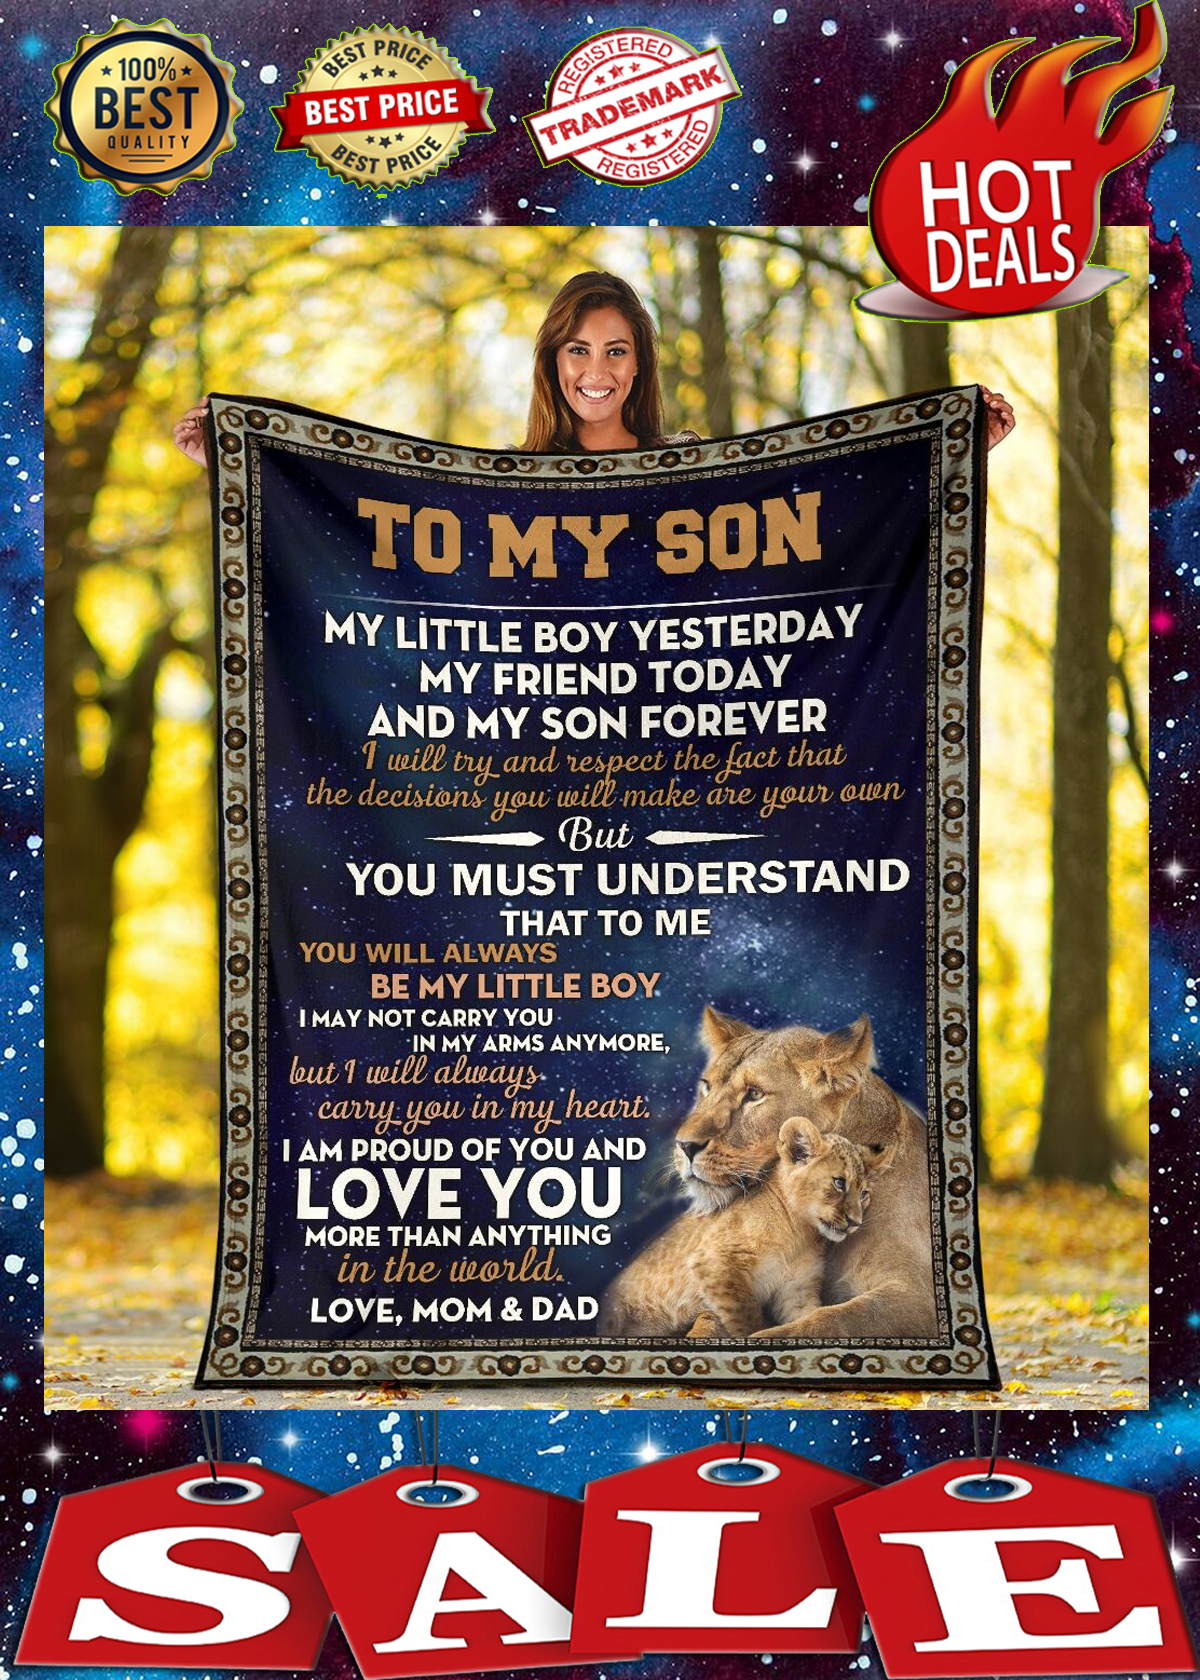 Lion to my son my little boy yesterday blanket 2